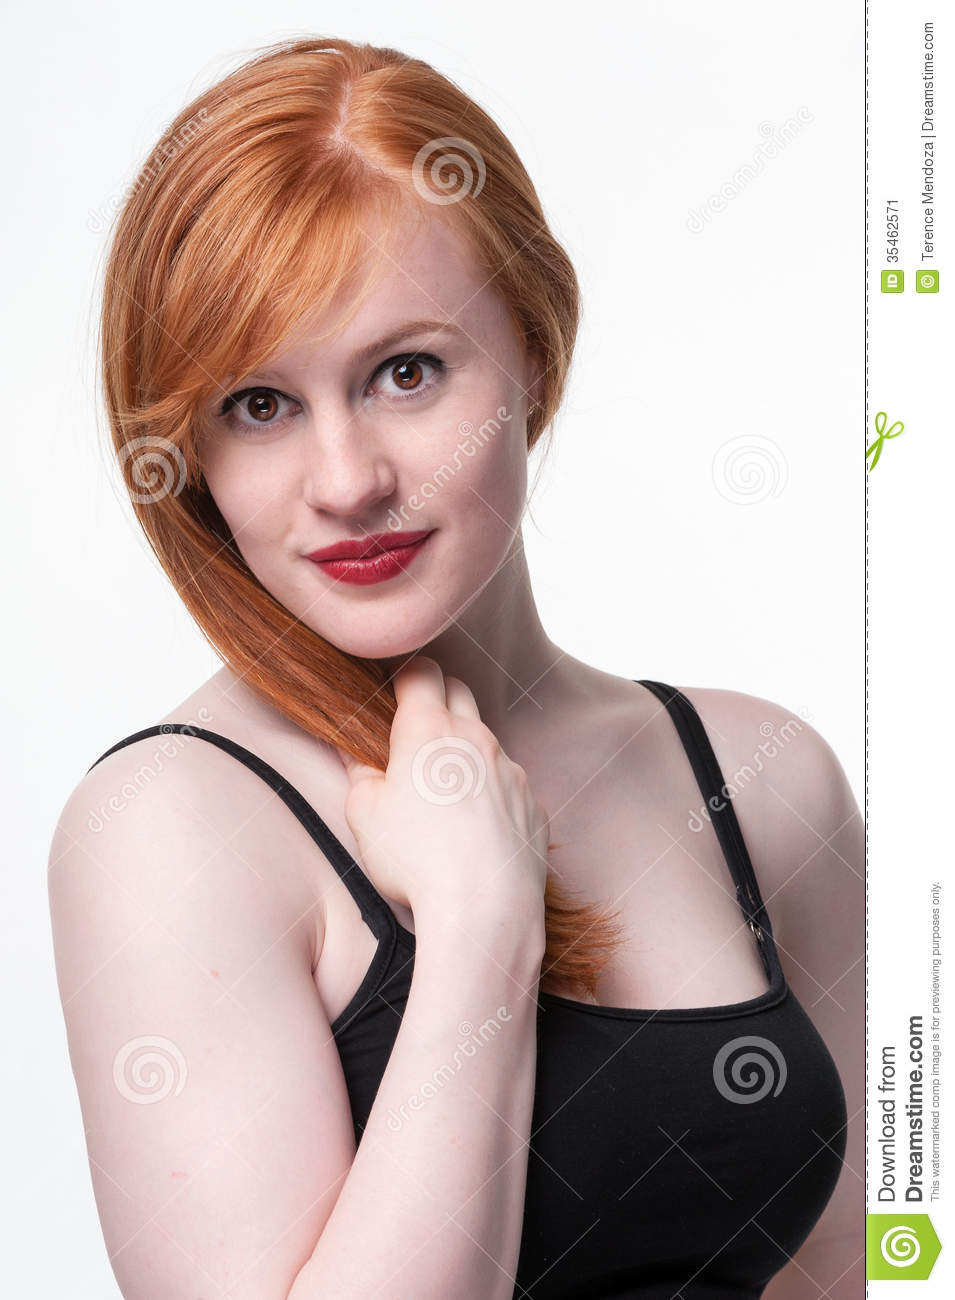 Redhead attractive photos